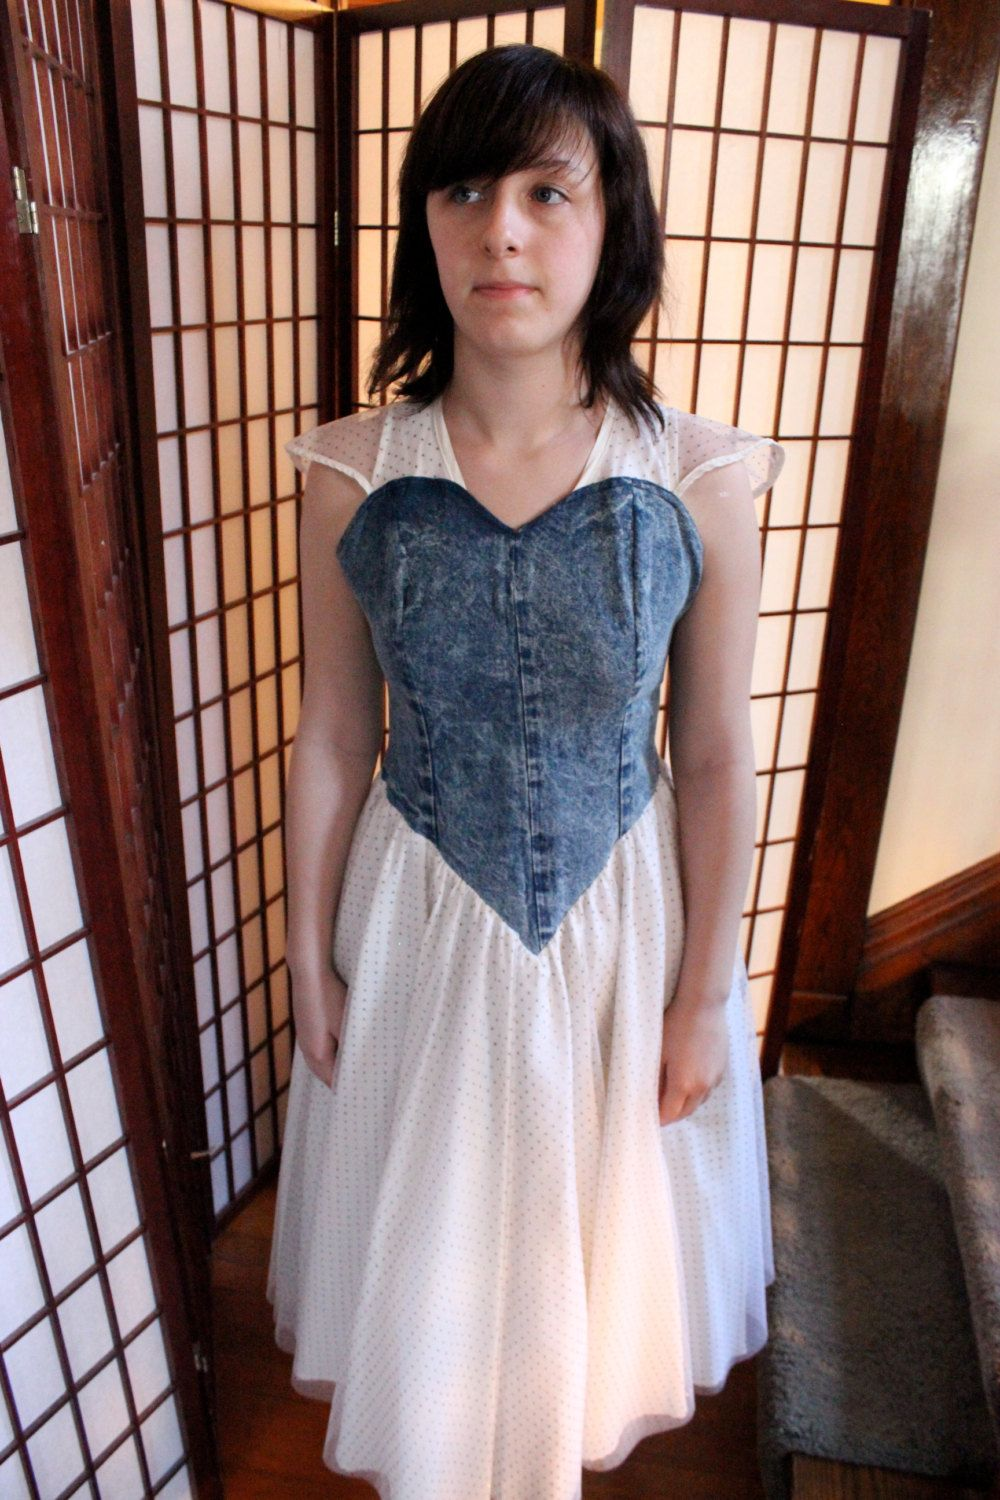 The worst prom dress ever acid wash denim and glitter toole if